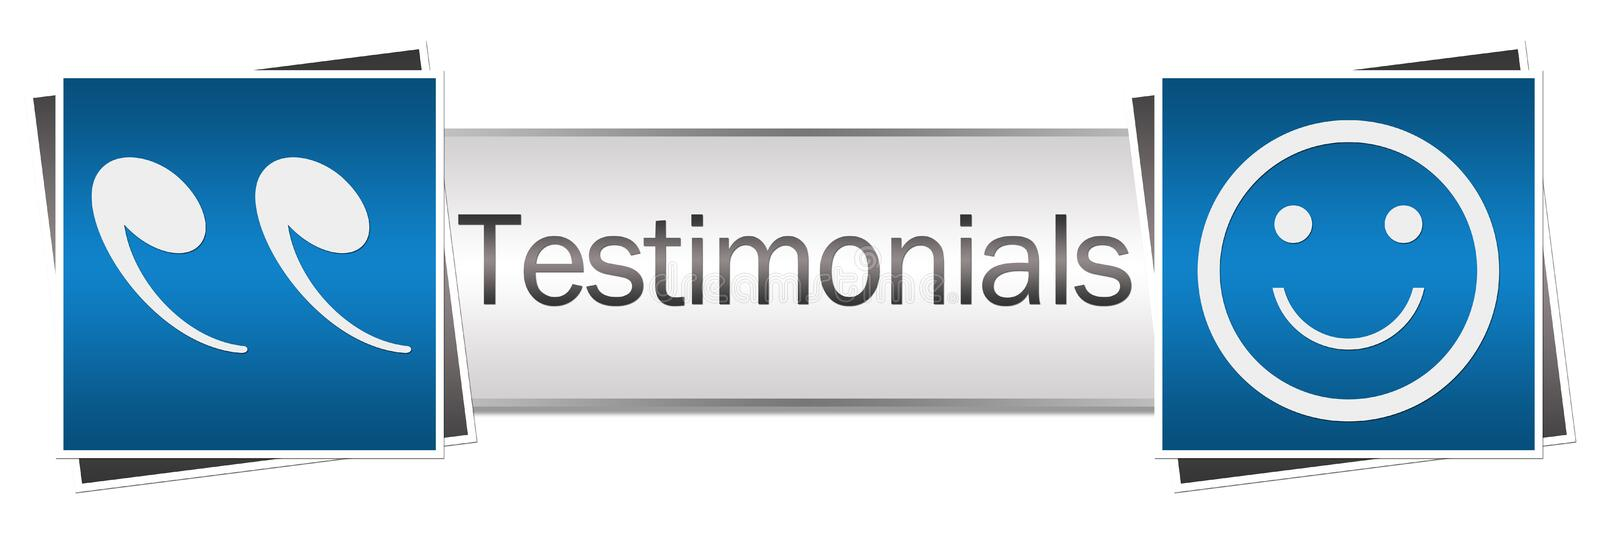 Testimonials Button Style. Testimonials concept image with text and related symbols vector illustration